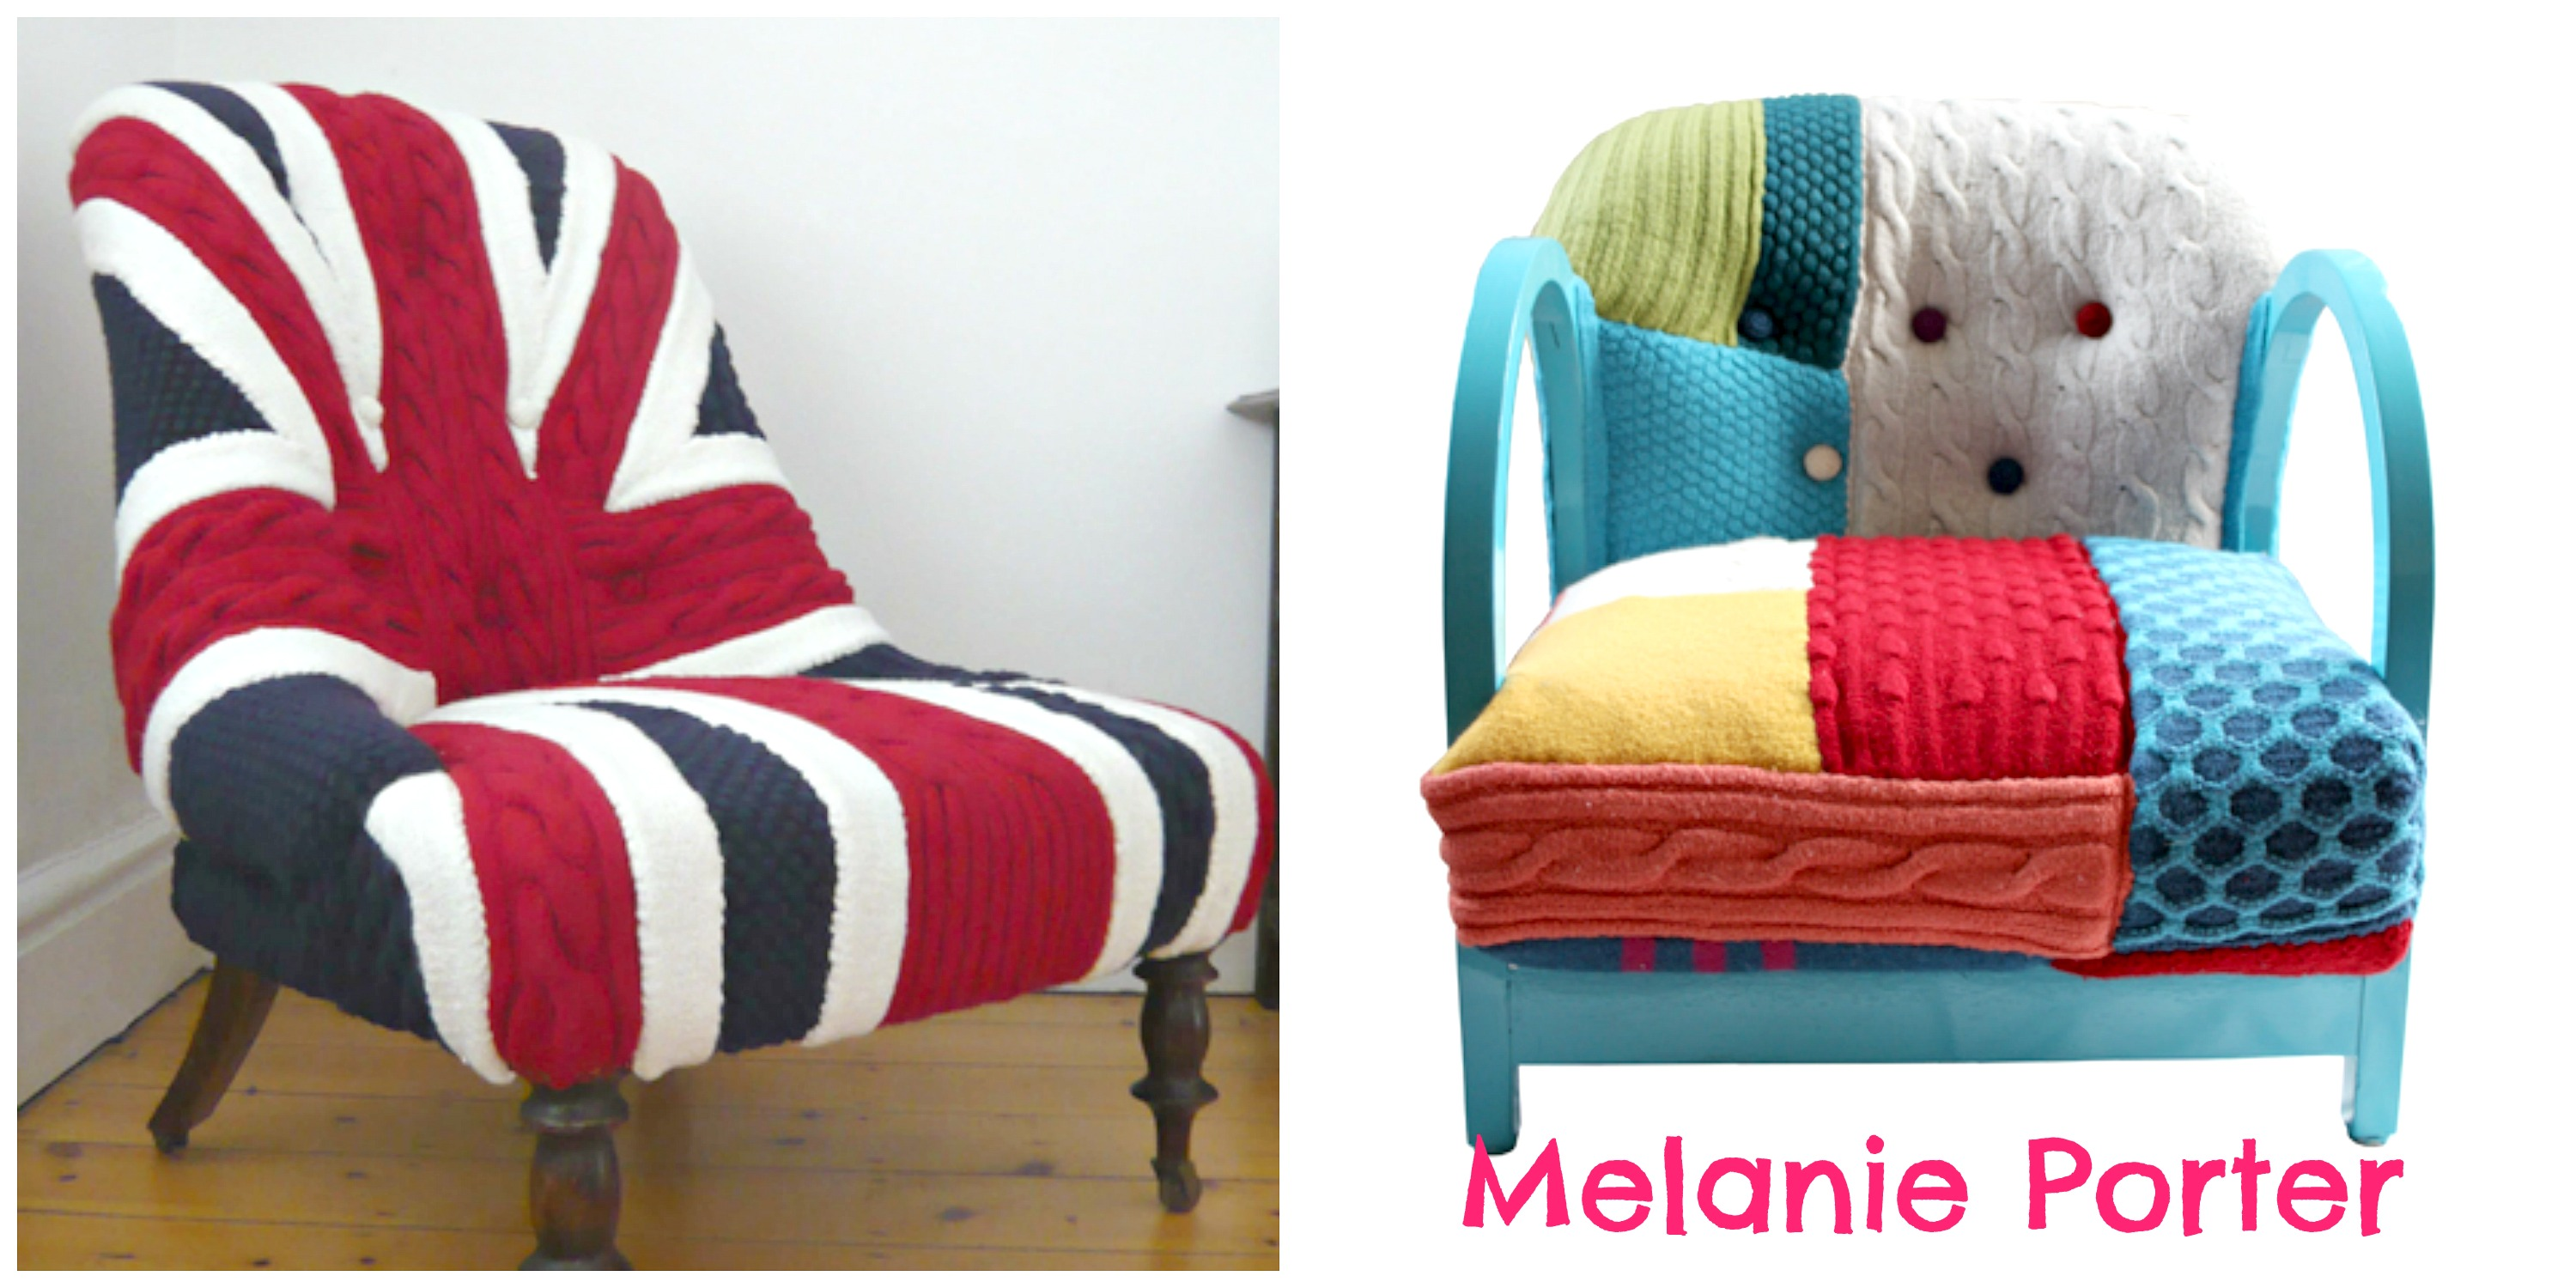 Claire Anne Ou0027 Brien Lives And Works In London Producing Textiles For  Furniture, Space And Product. Her Fabulously Decorative Pillows, Knitted  Fabrics And ...